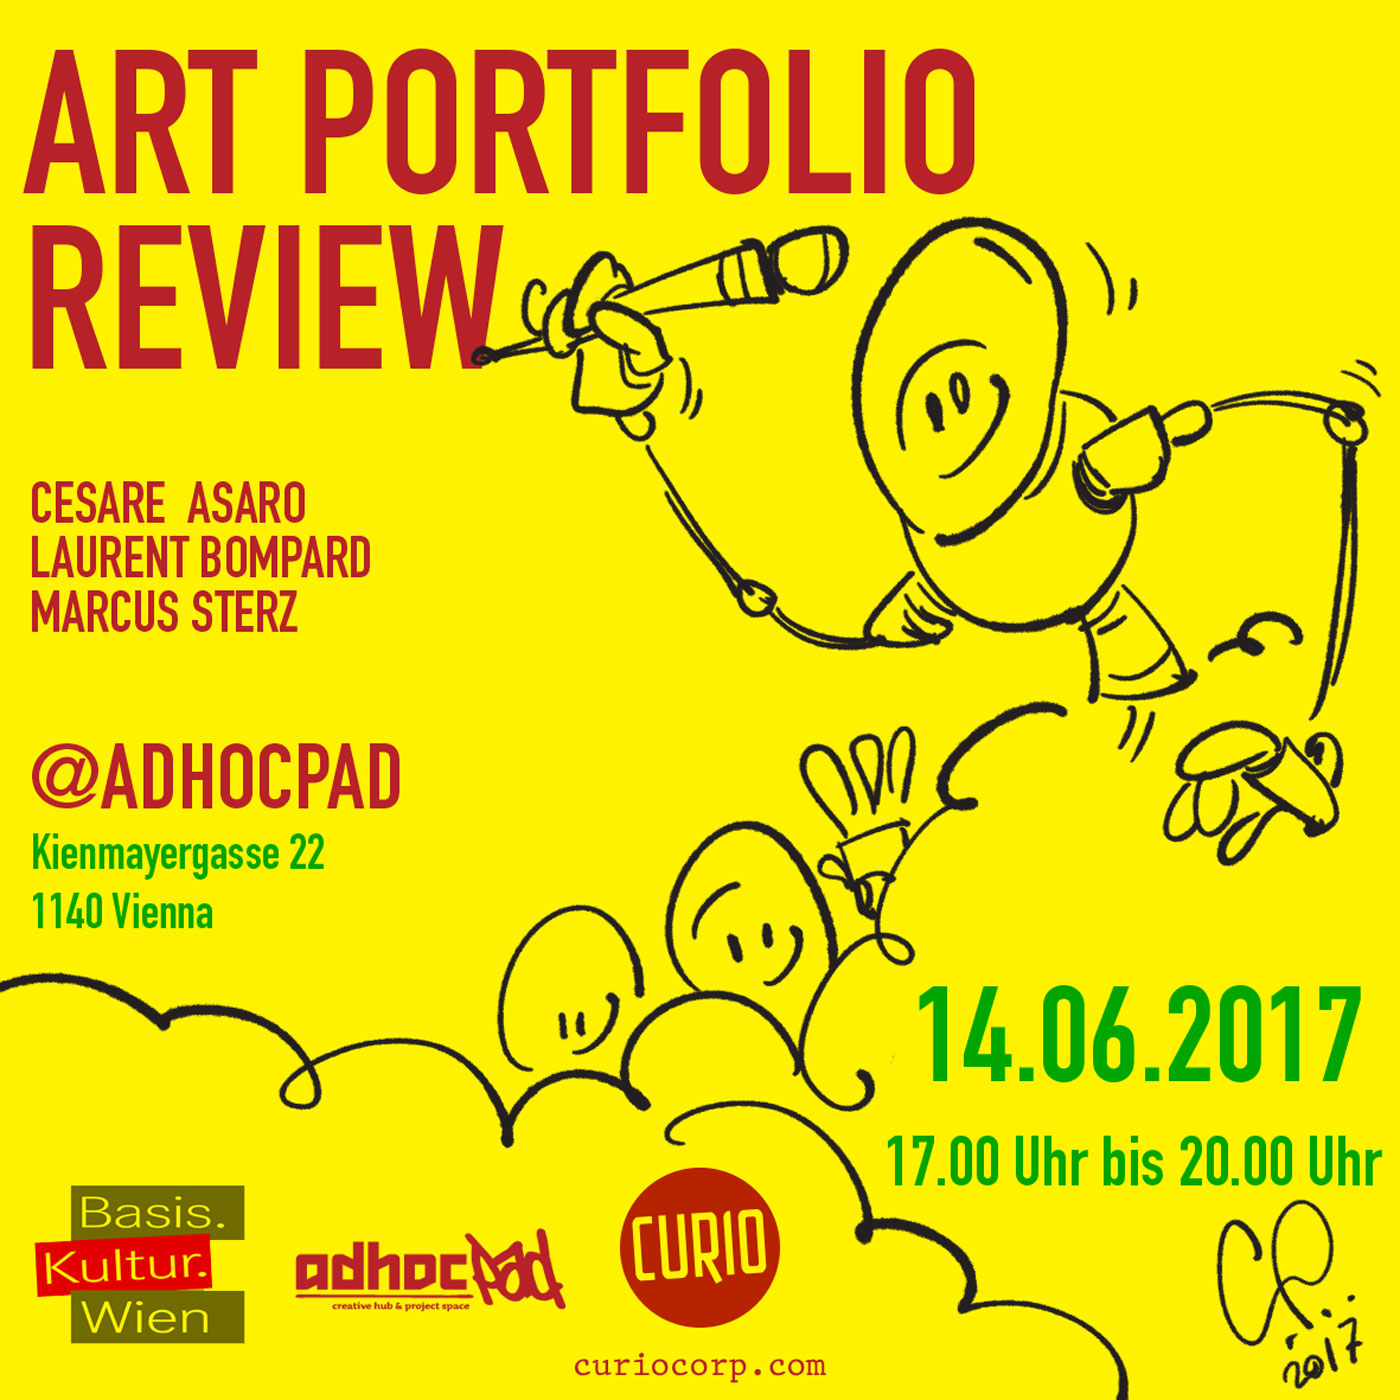 Art Portfolio review with Cesare Asaro Lurent Bompard and Marcus Sterz